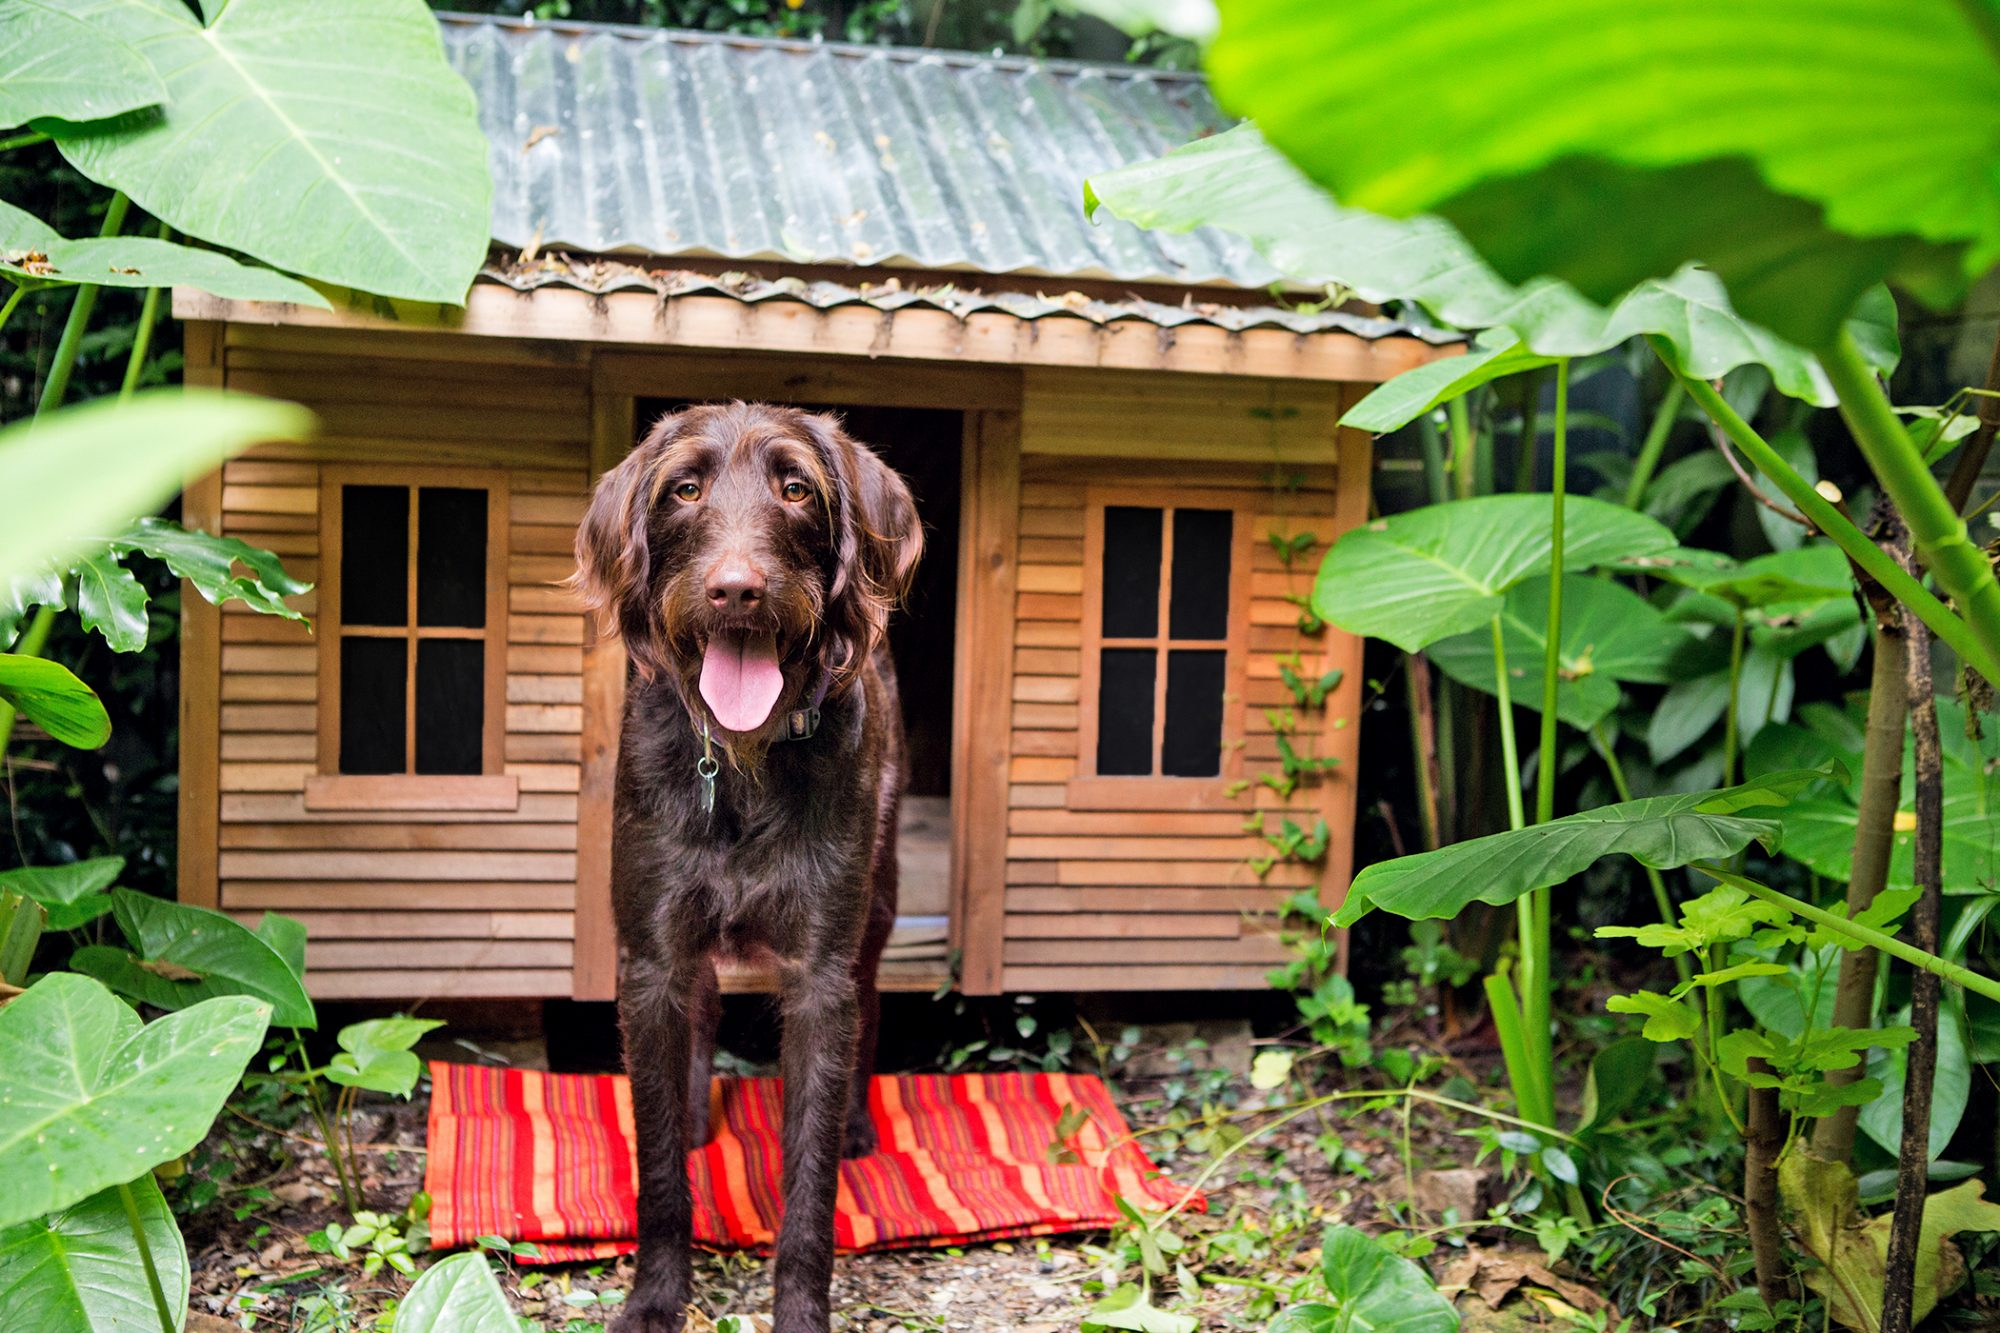 Beautiful dog standing in front a dog house with windows